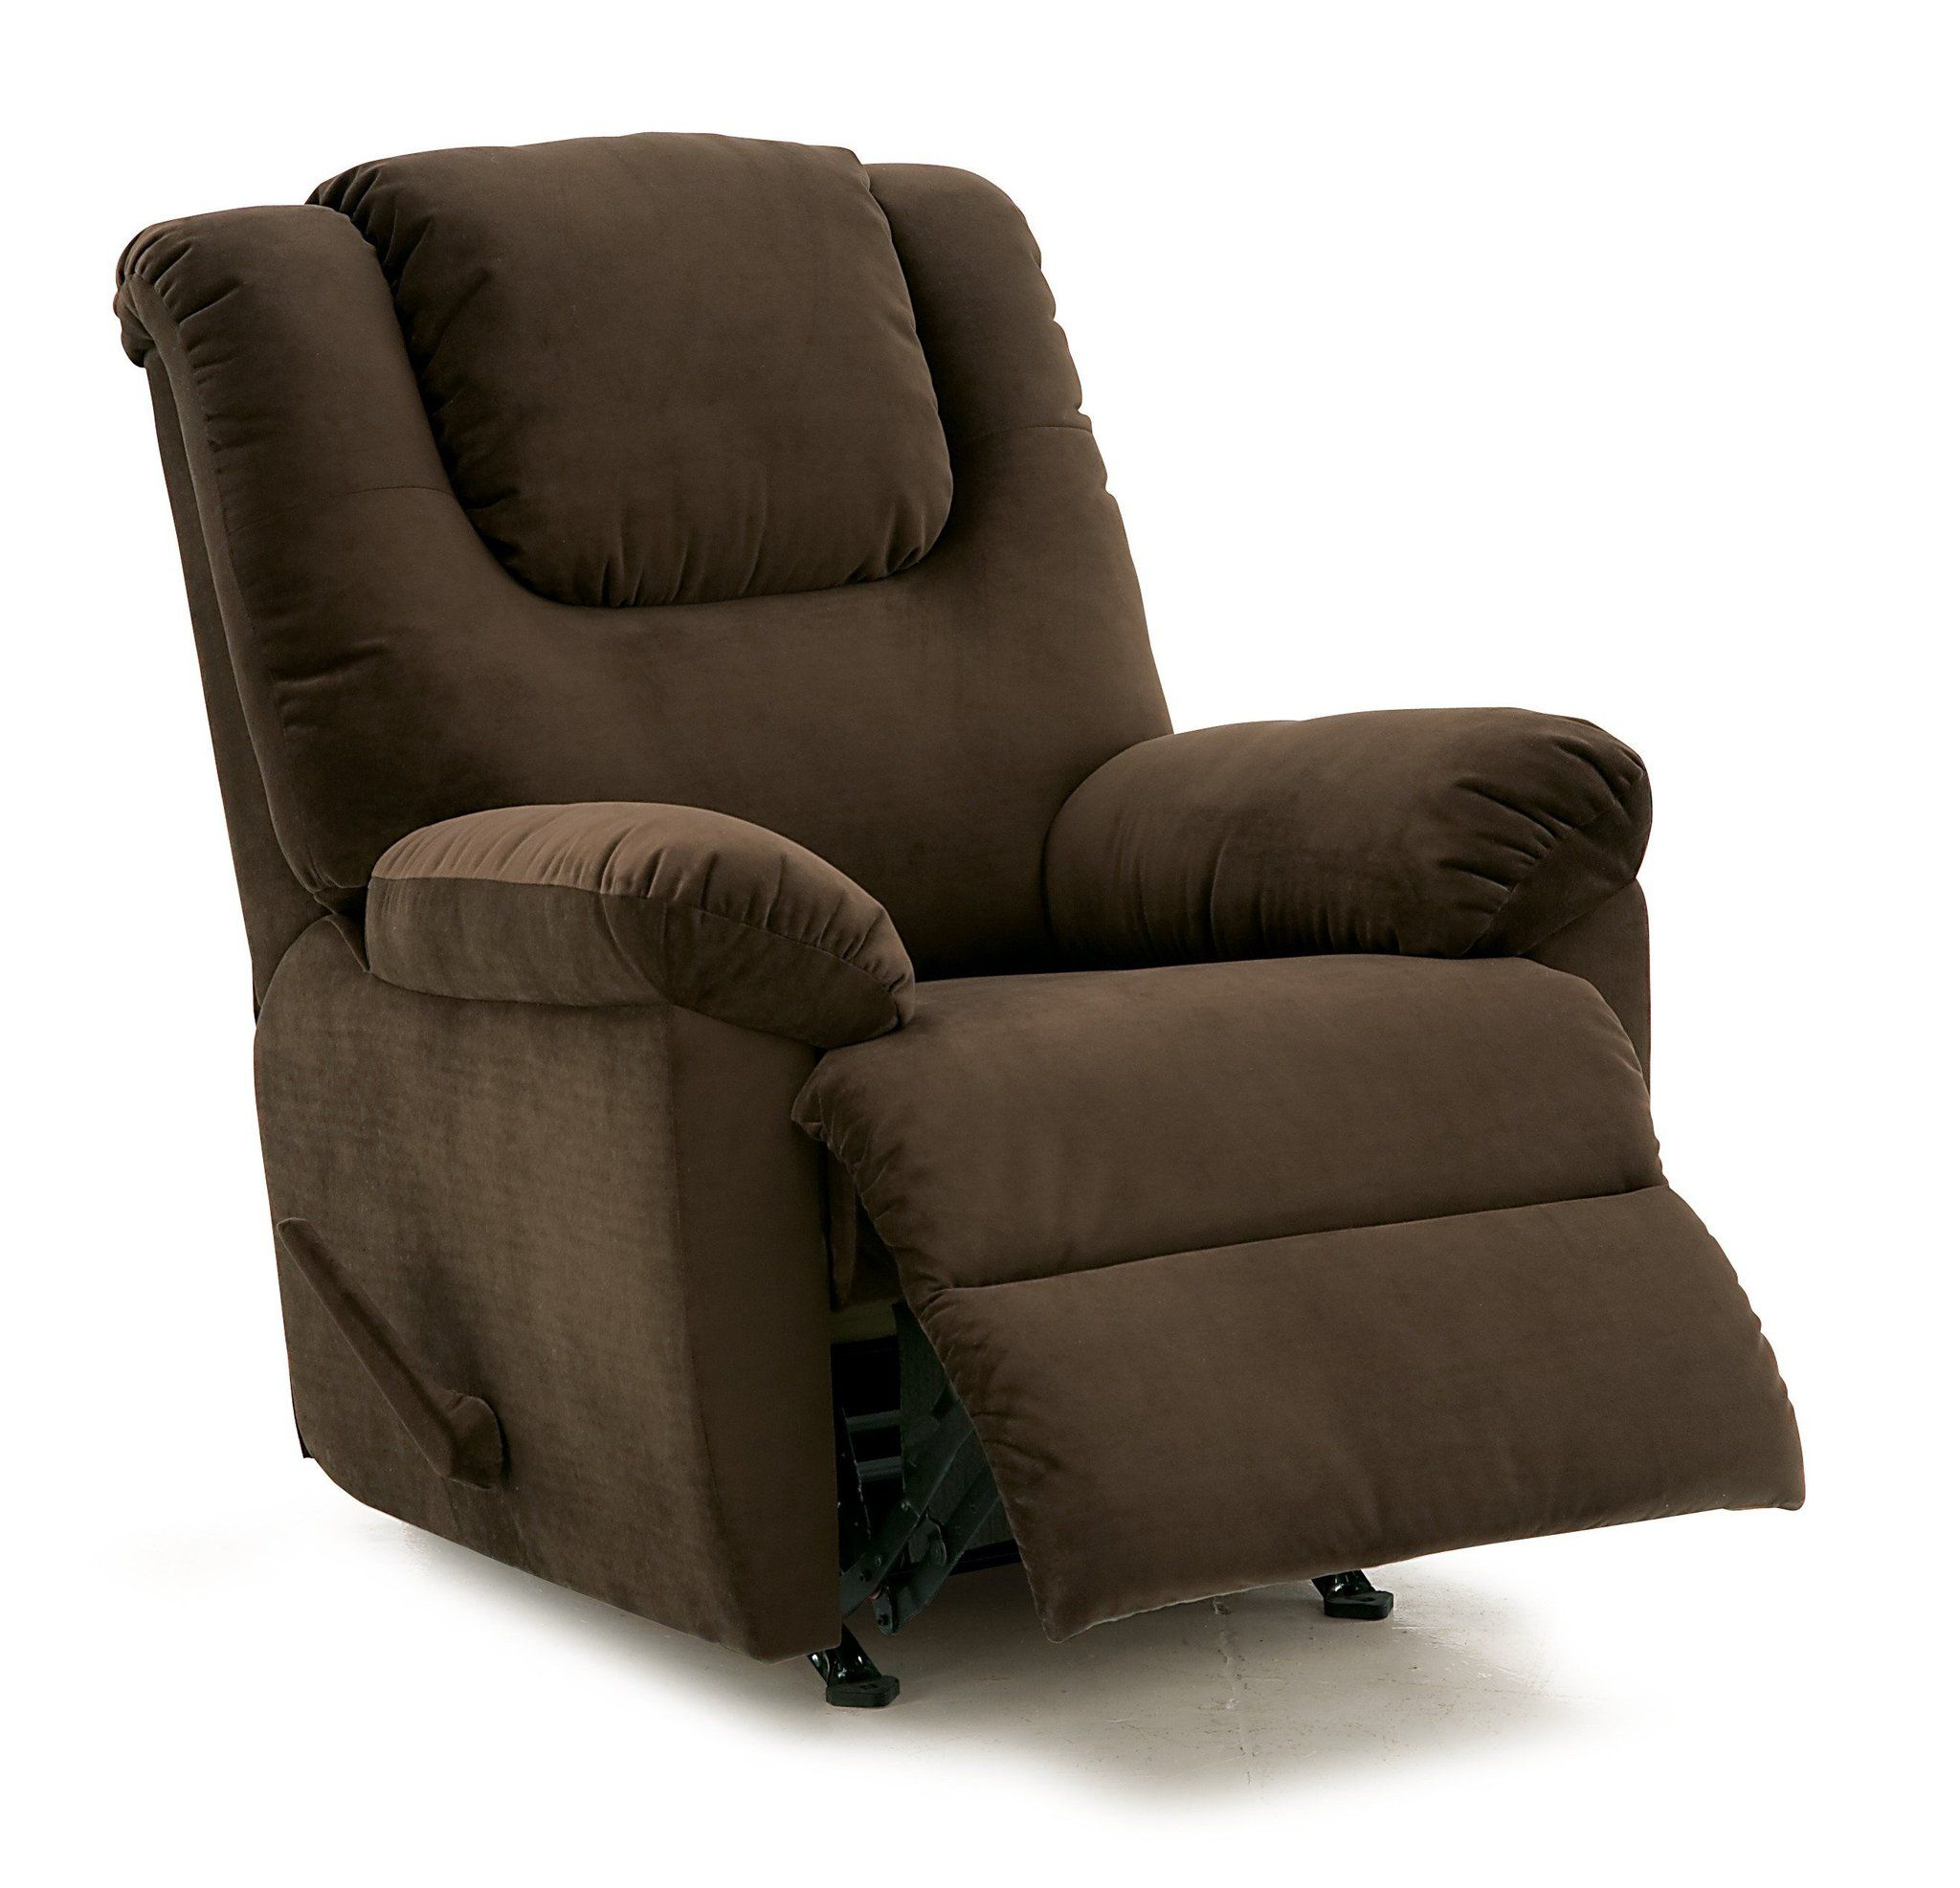 Tundra Recliner The Tundra Collection Offers Classic Plush Comfort In A Small Enough Footp Small Recliner Chairs Recliner Chair Swivel Rocker Recliner Chair